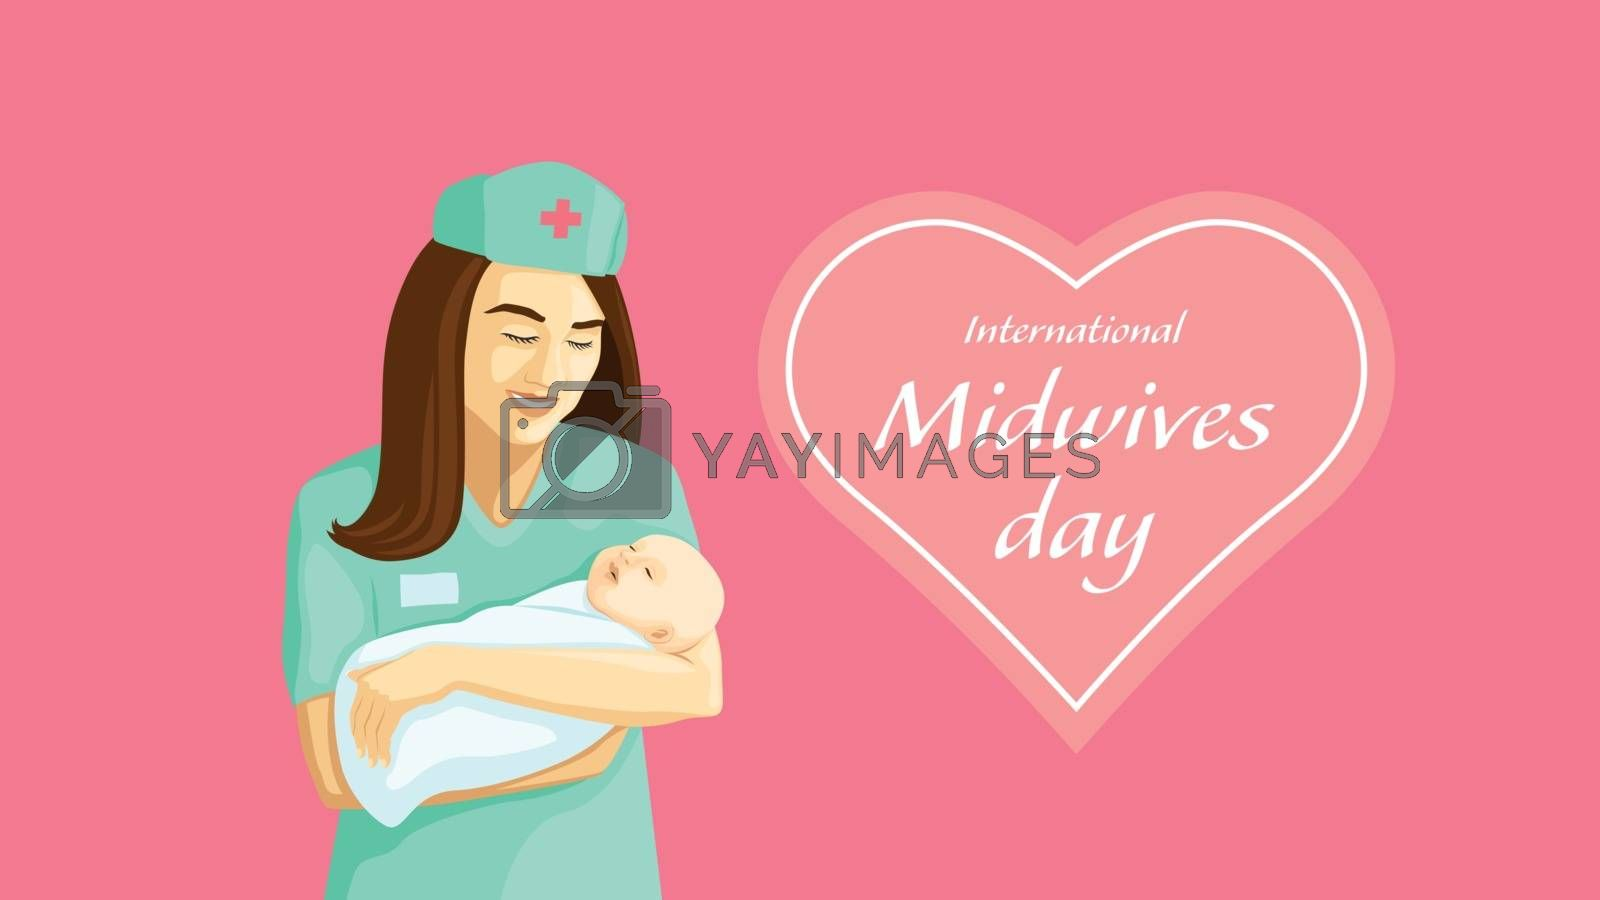 Midwife holding a swaddled baby in her arms by David_Lugasi